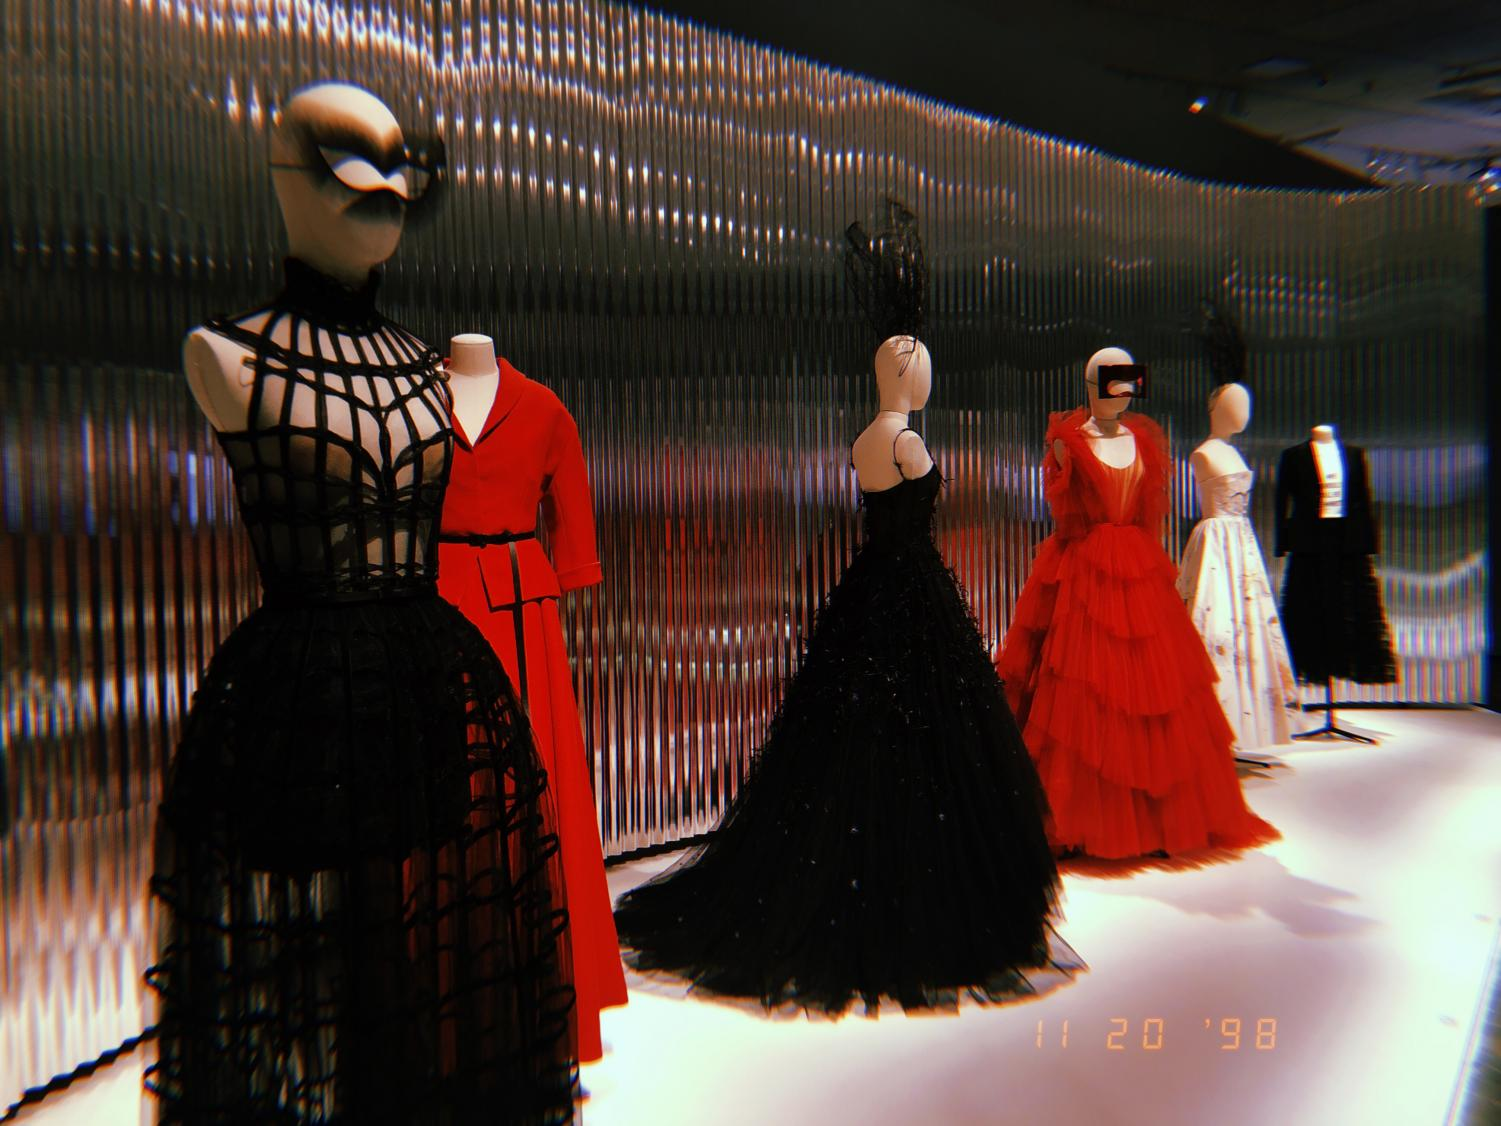 Edgy lineup of red, black, and white couture outfits in the